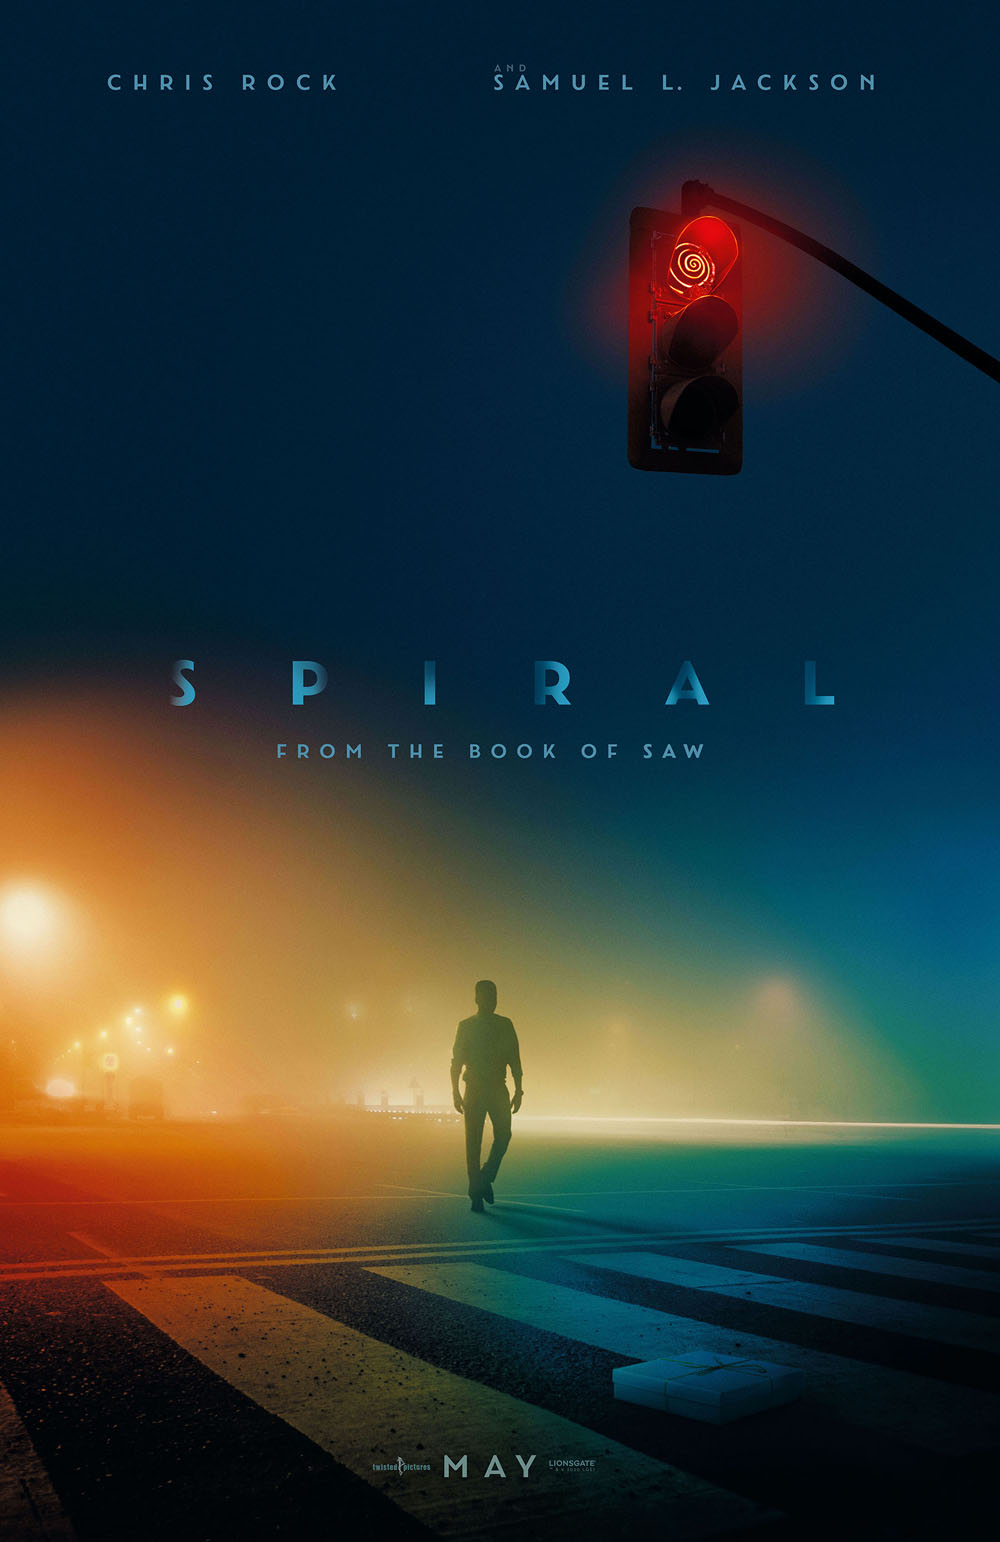 Spiral: From the Book of Saw poster Chris Rock Samuel L. Jackson